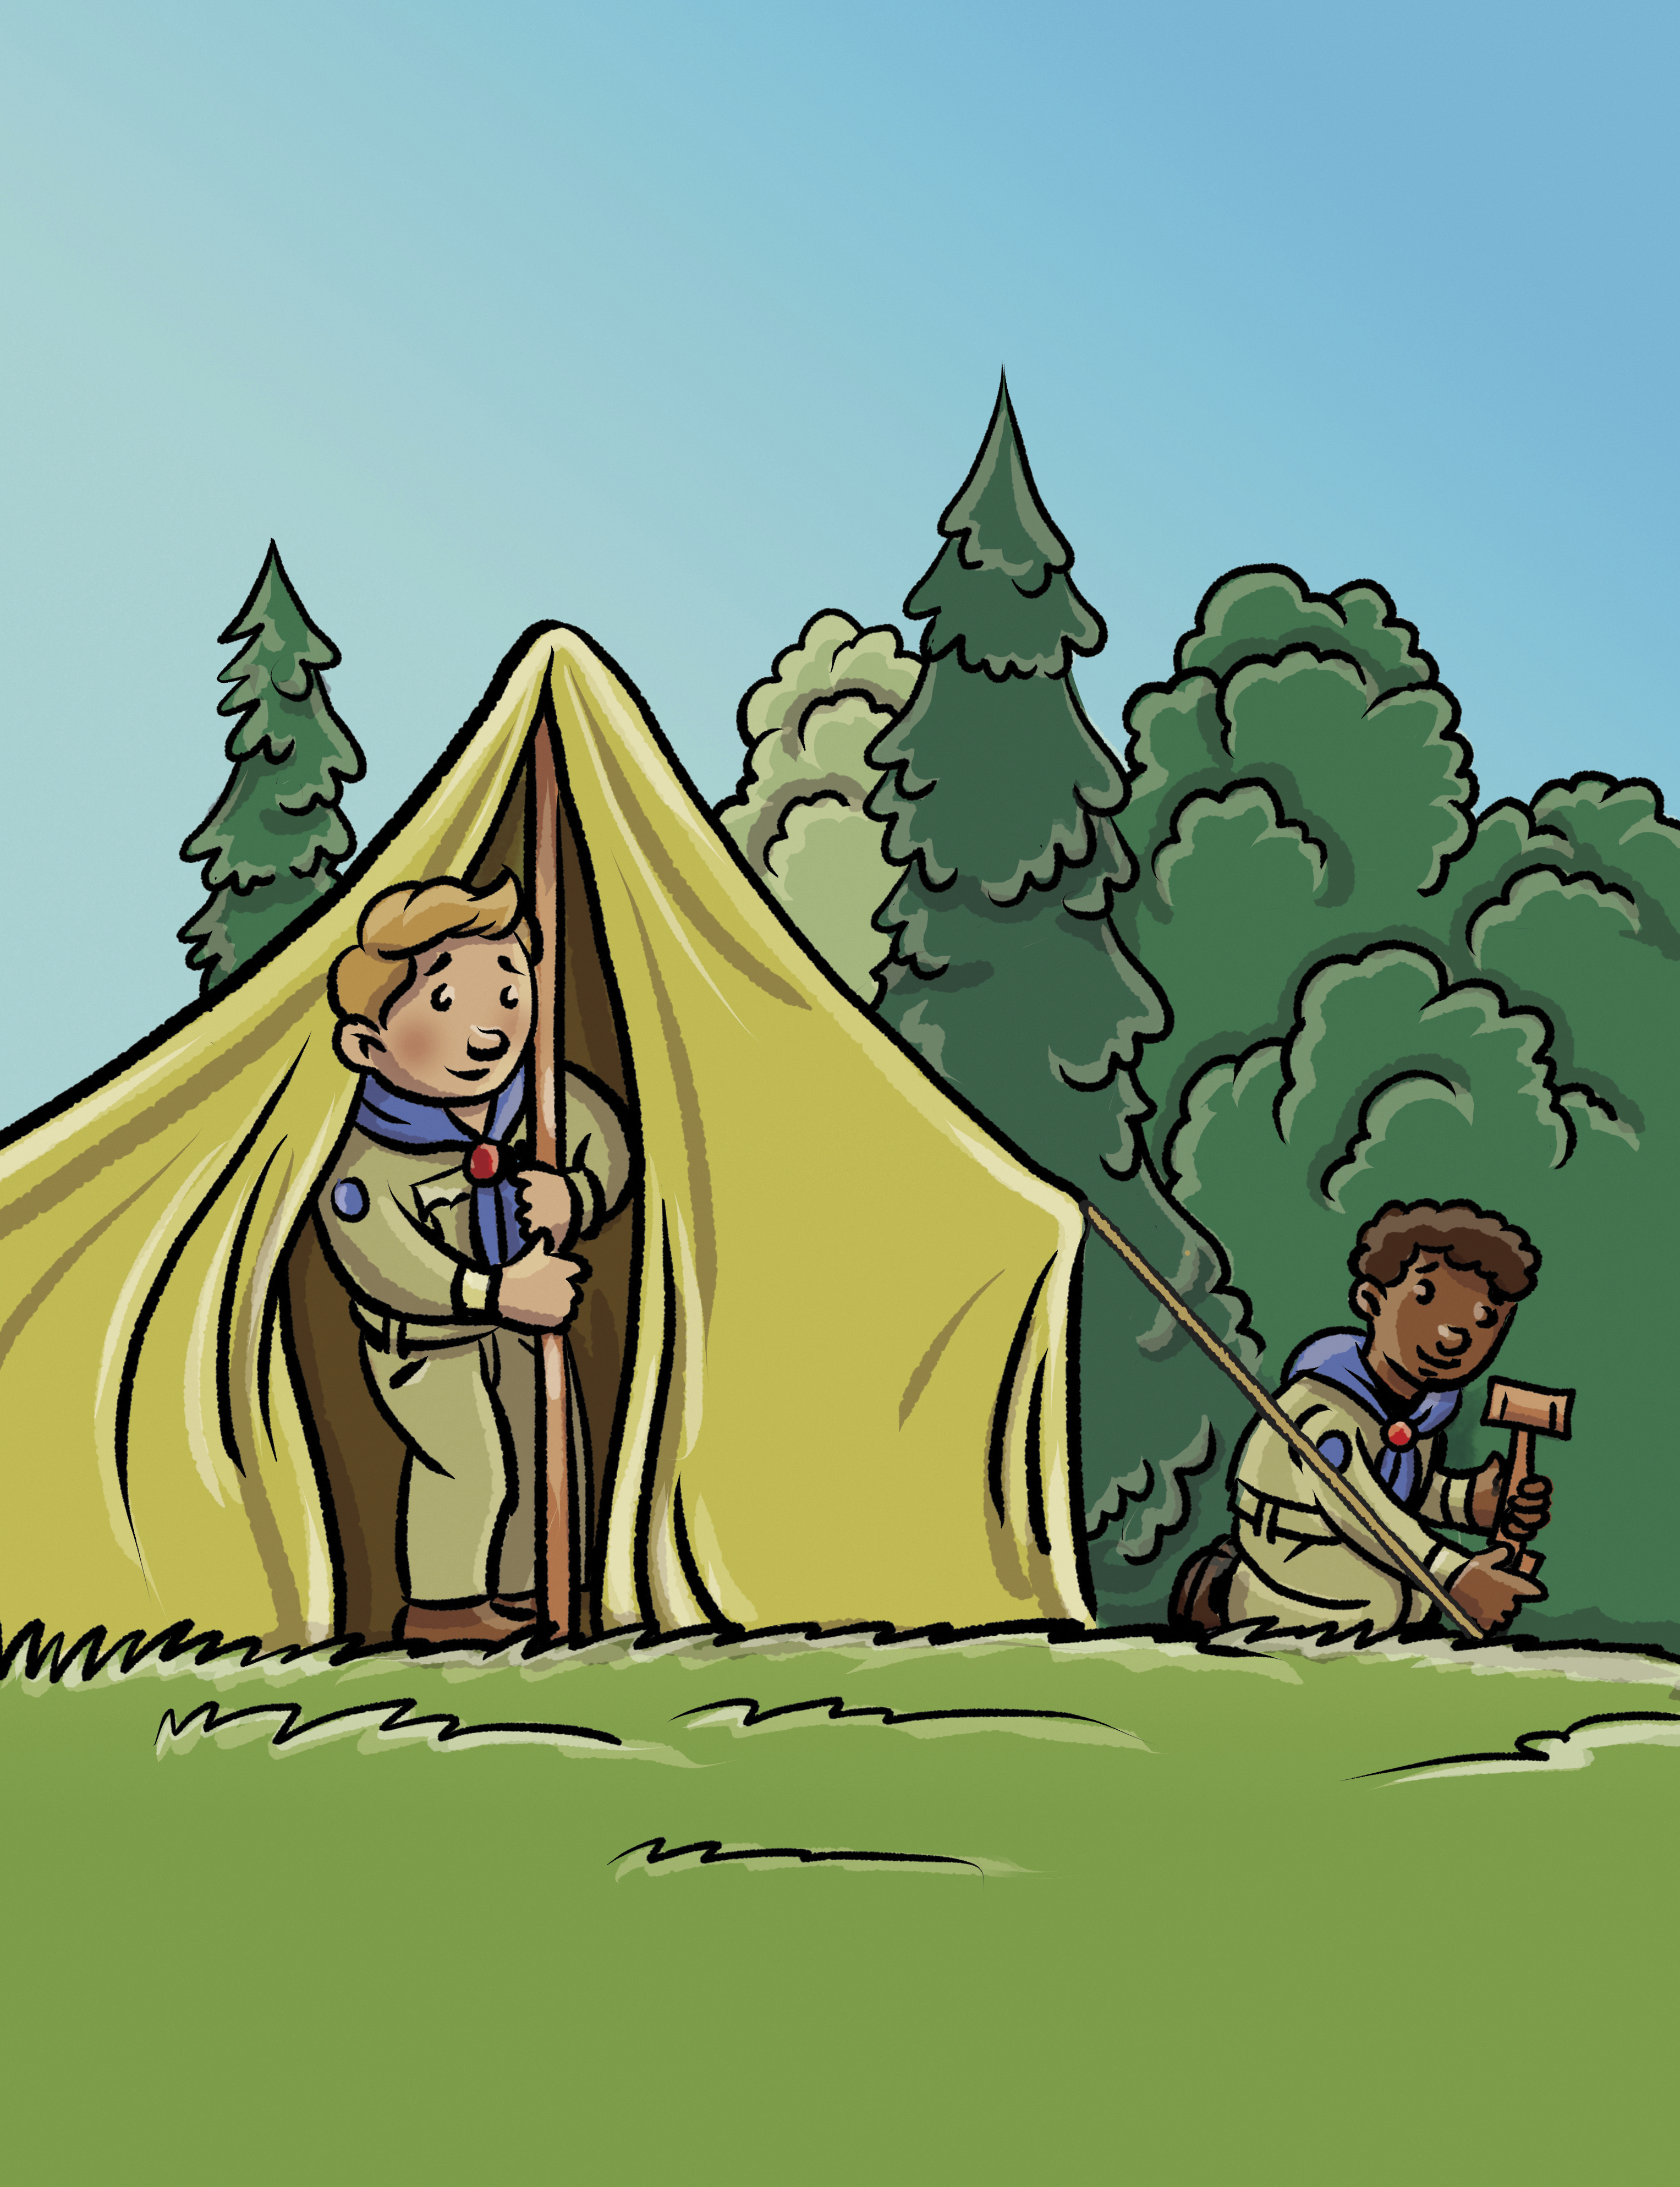 Two Boy Scouts set up a tent together.